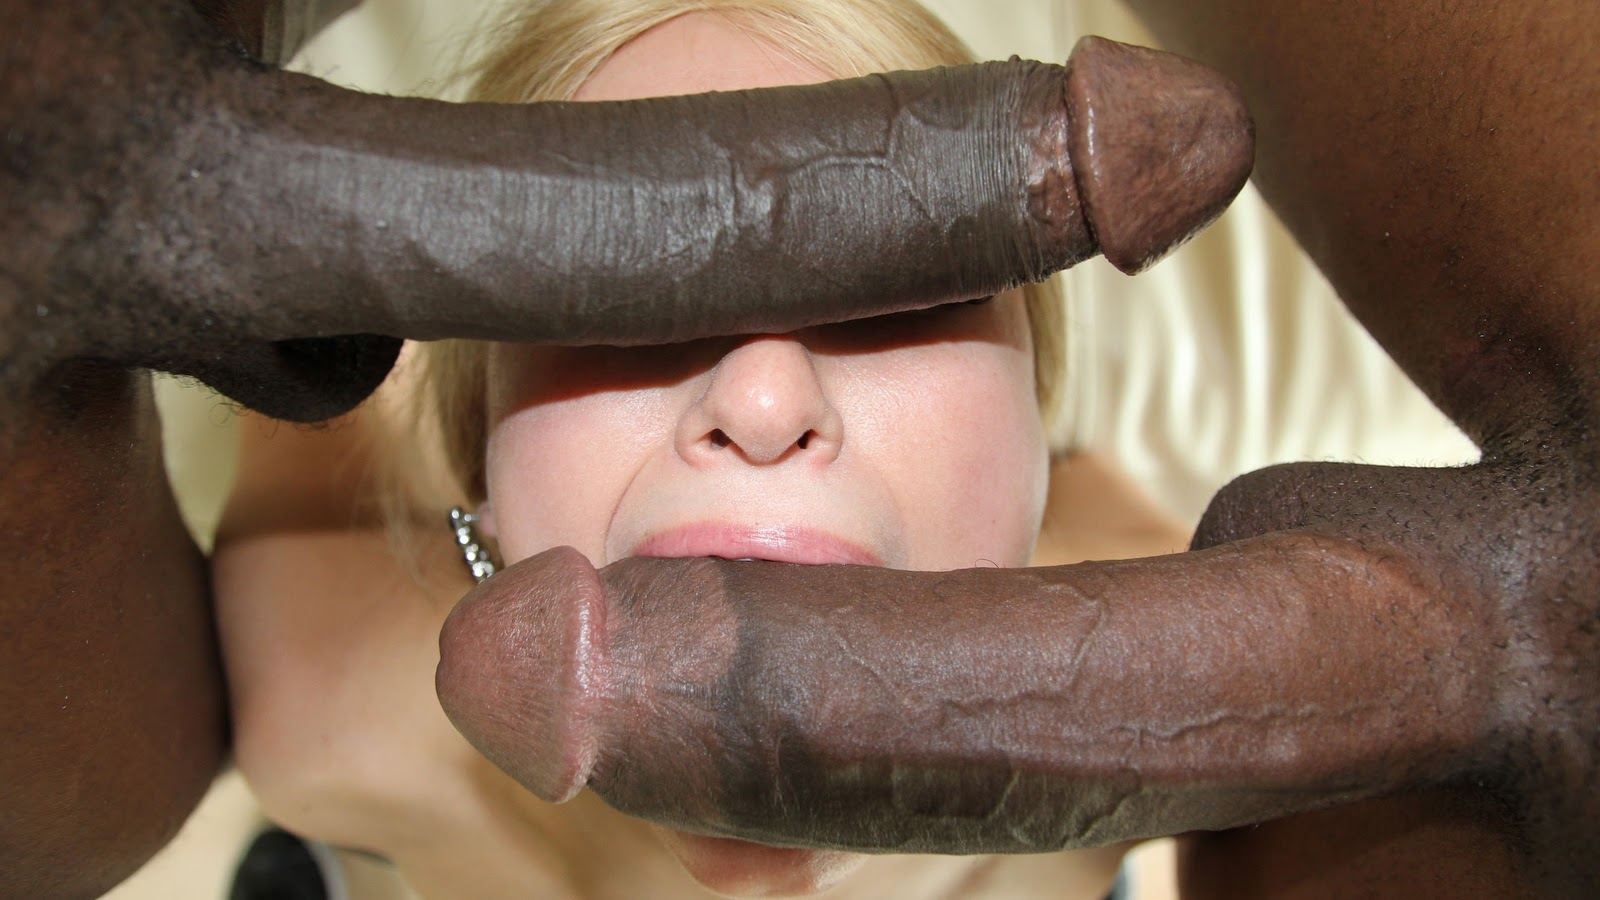 Monster black cock's and fucking wallpapers adult galleries